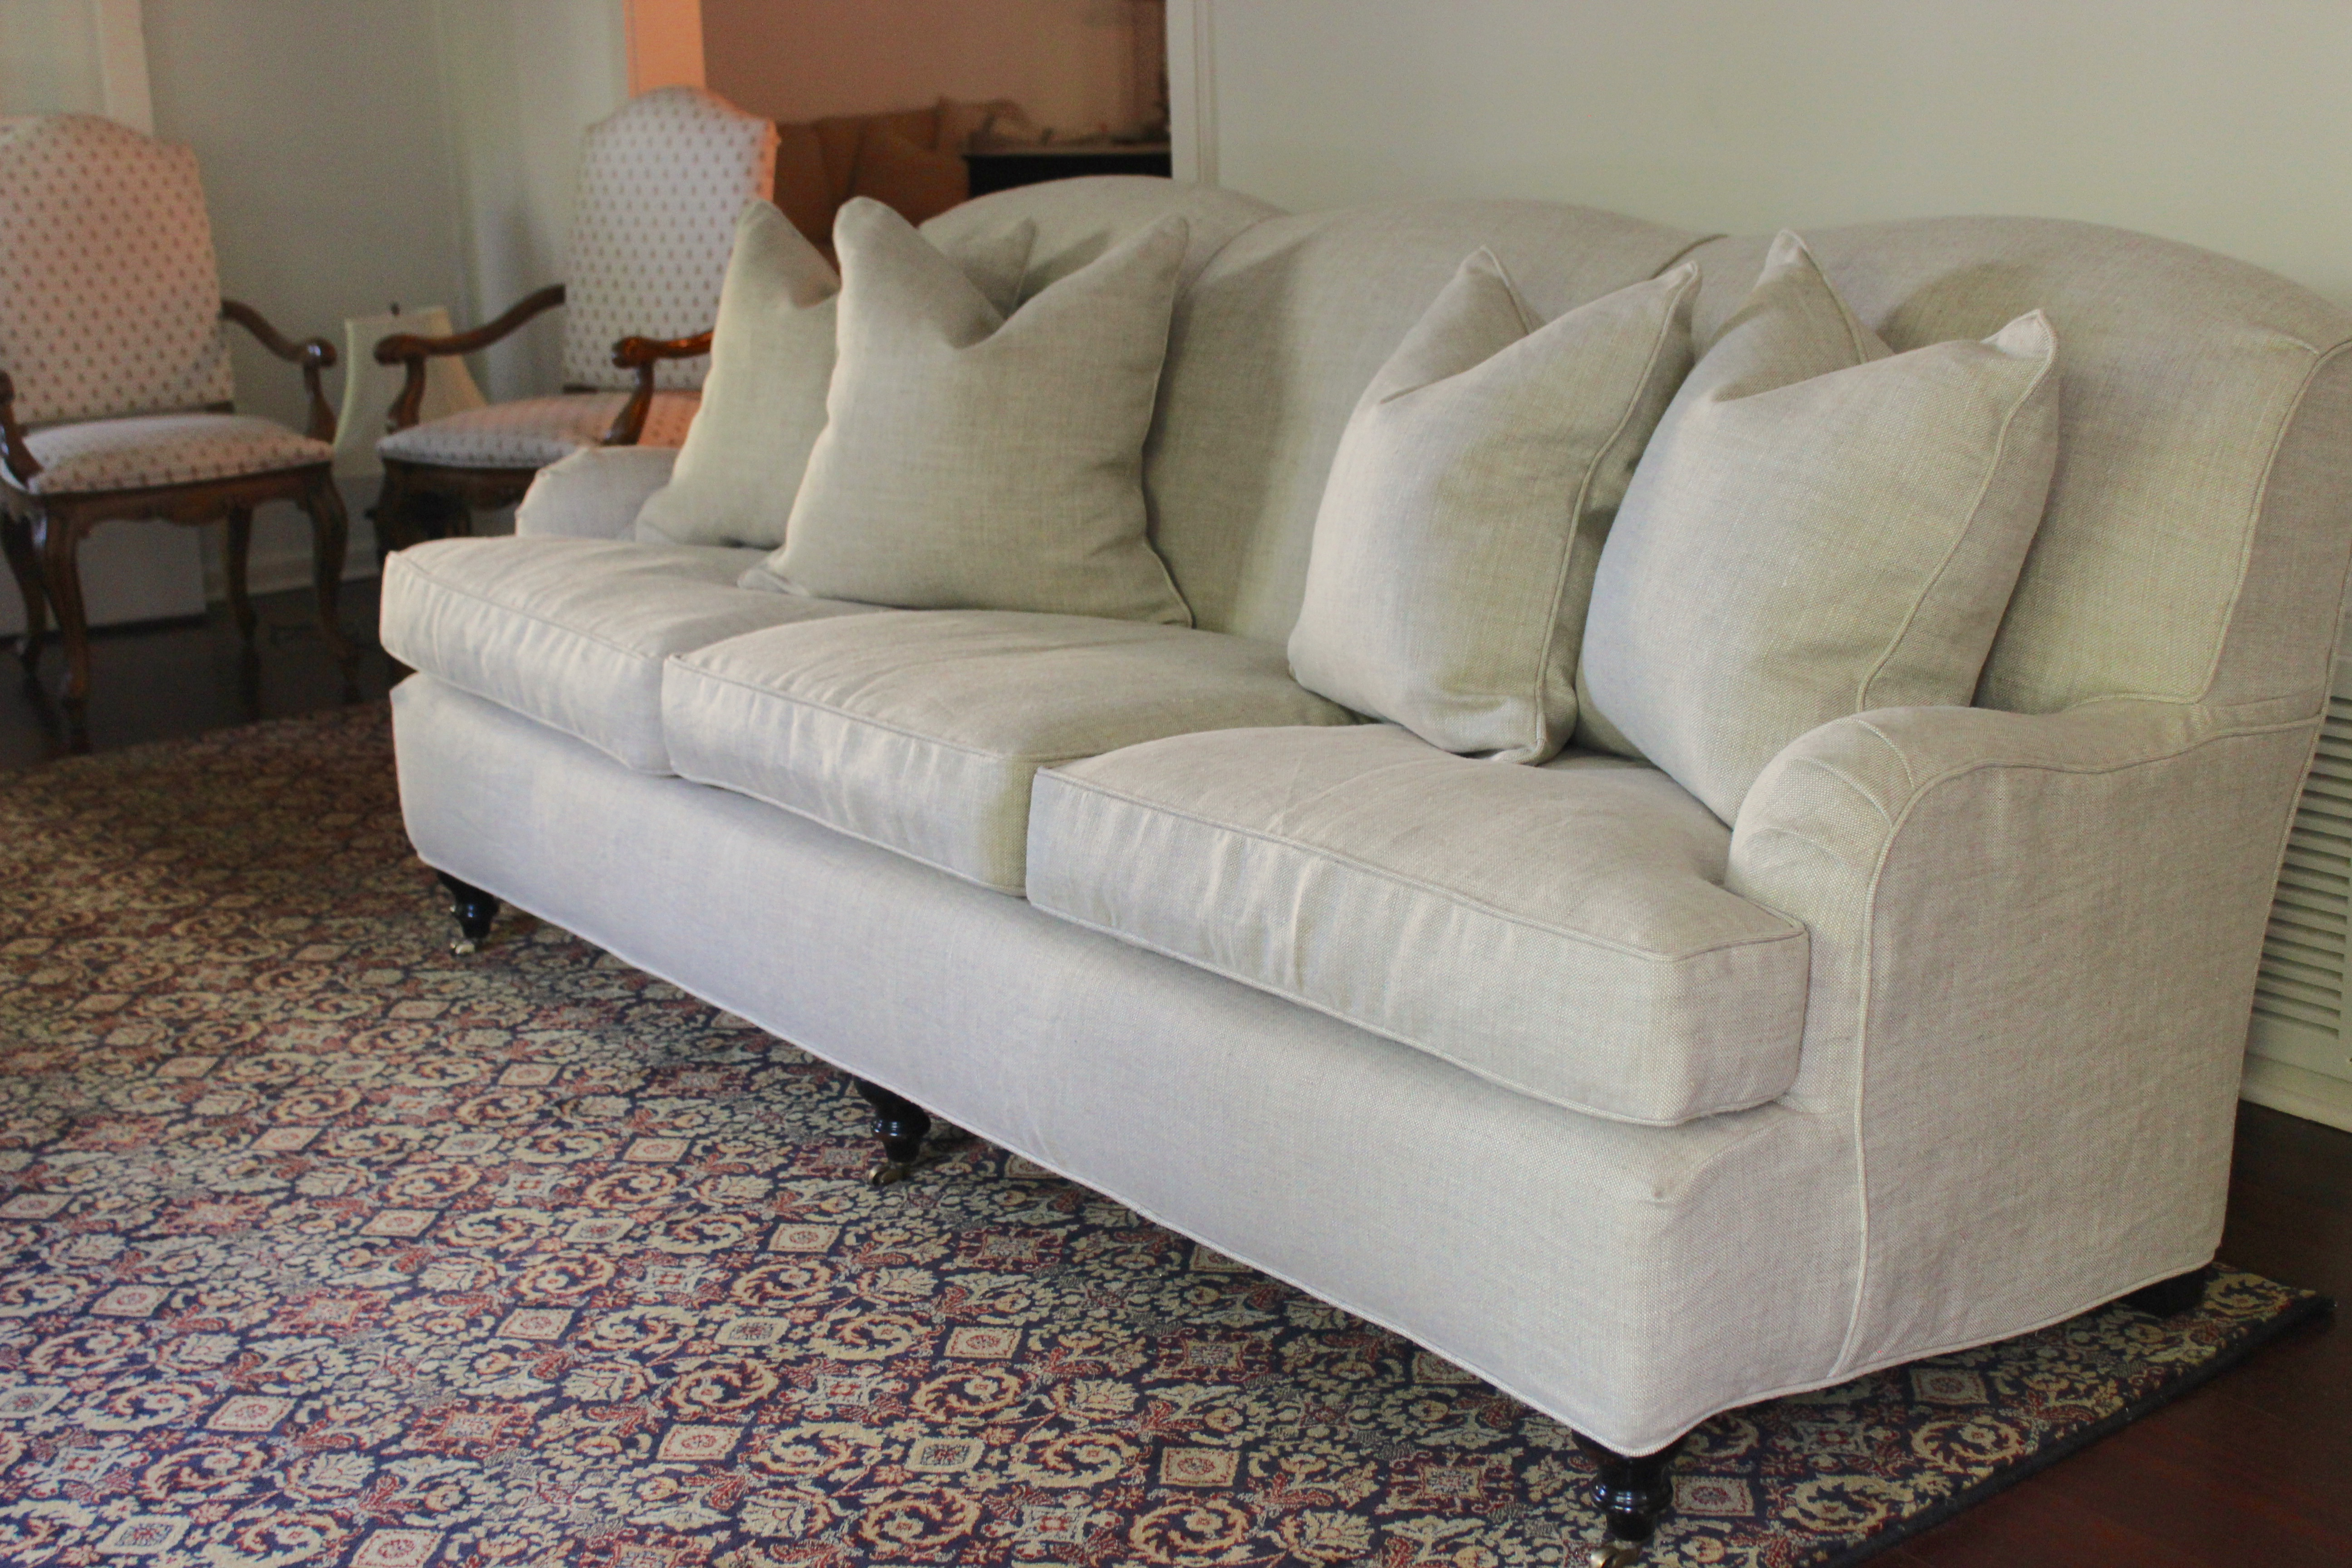 Linen English Rolled Arm Couch Slipcovers By Shelley